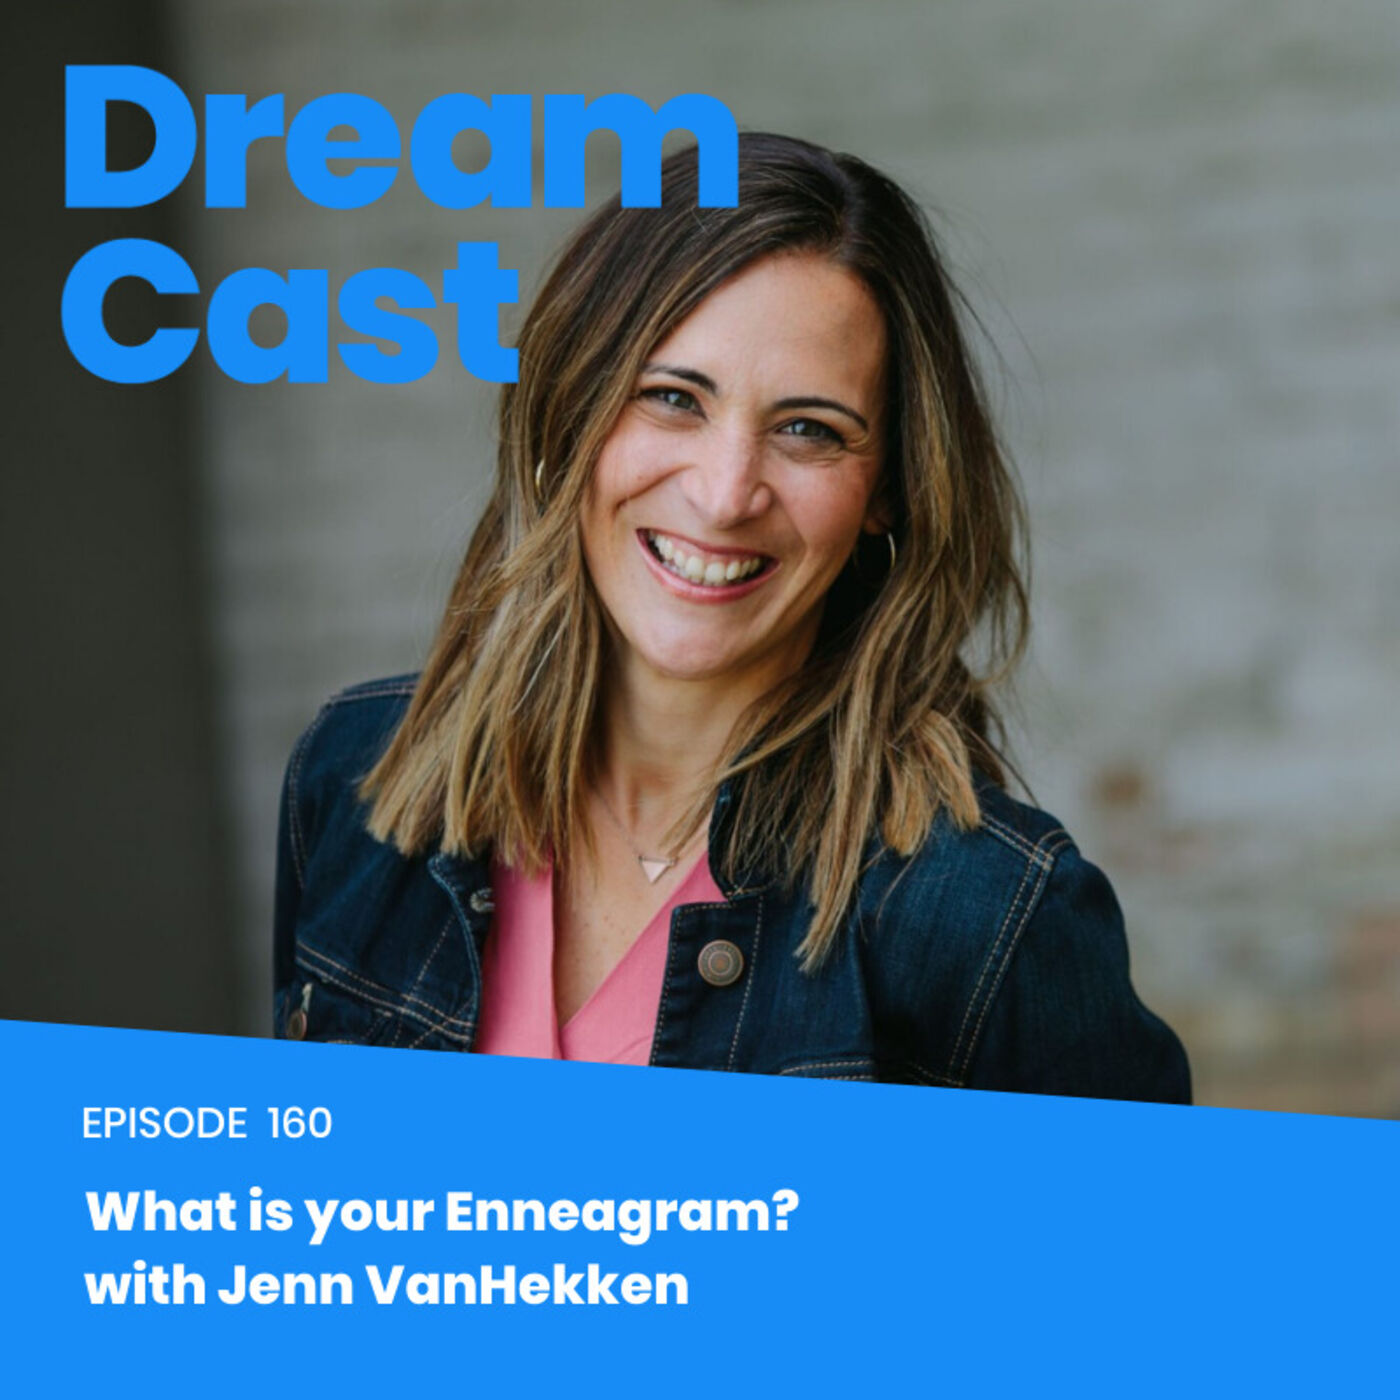 Episode 160 – What is your Enneagram? with Jenn VanHekken